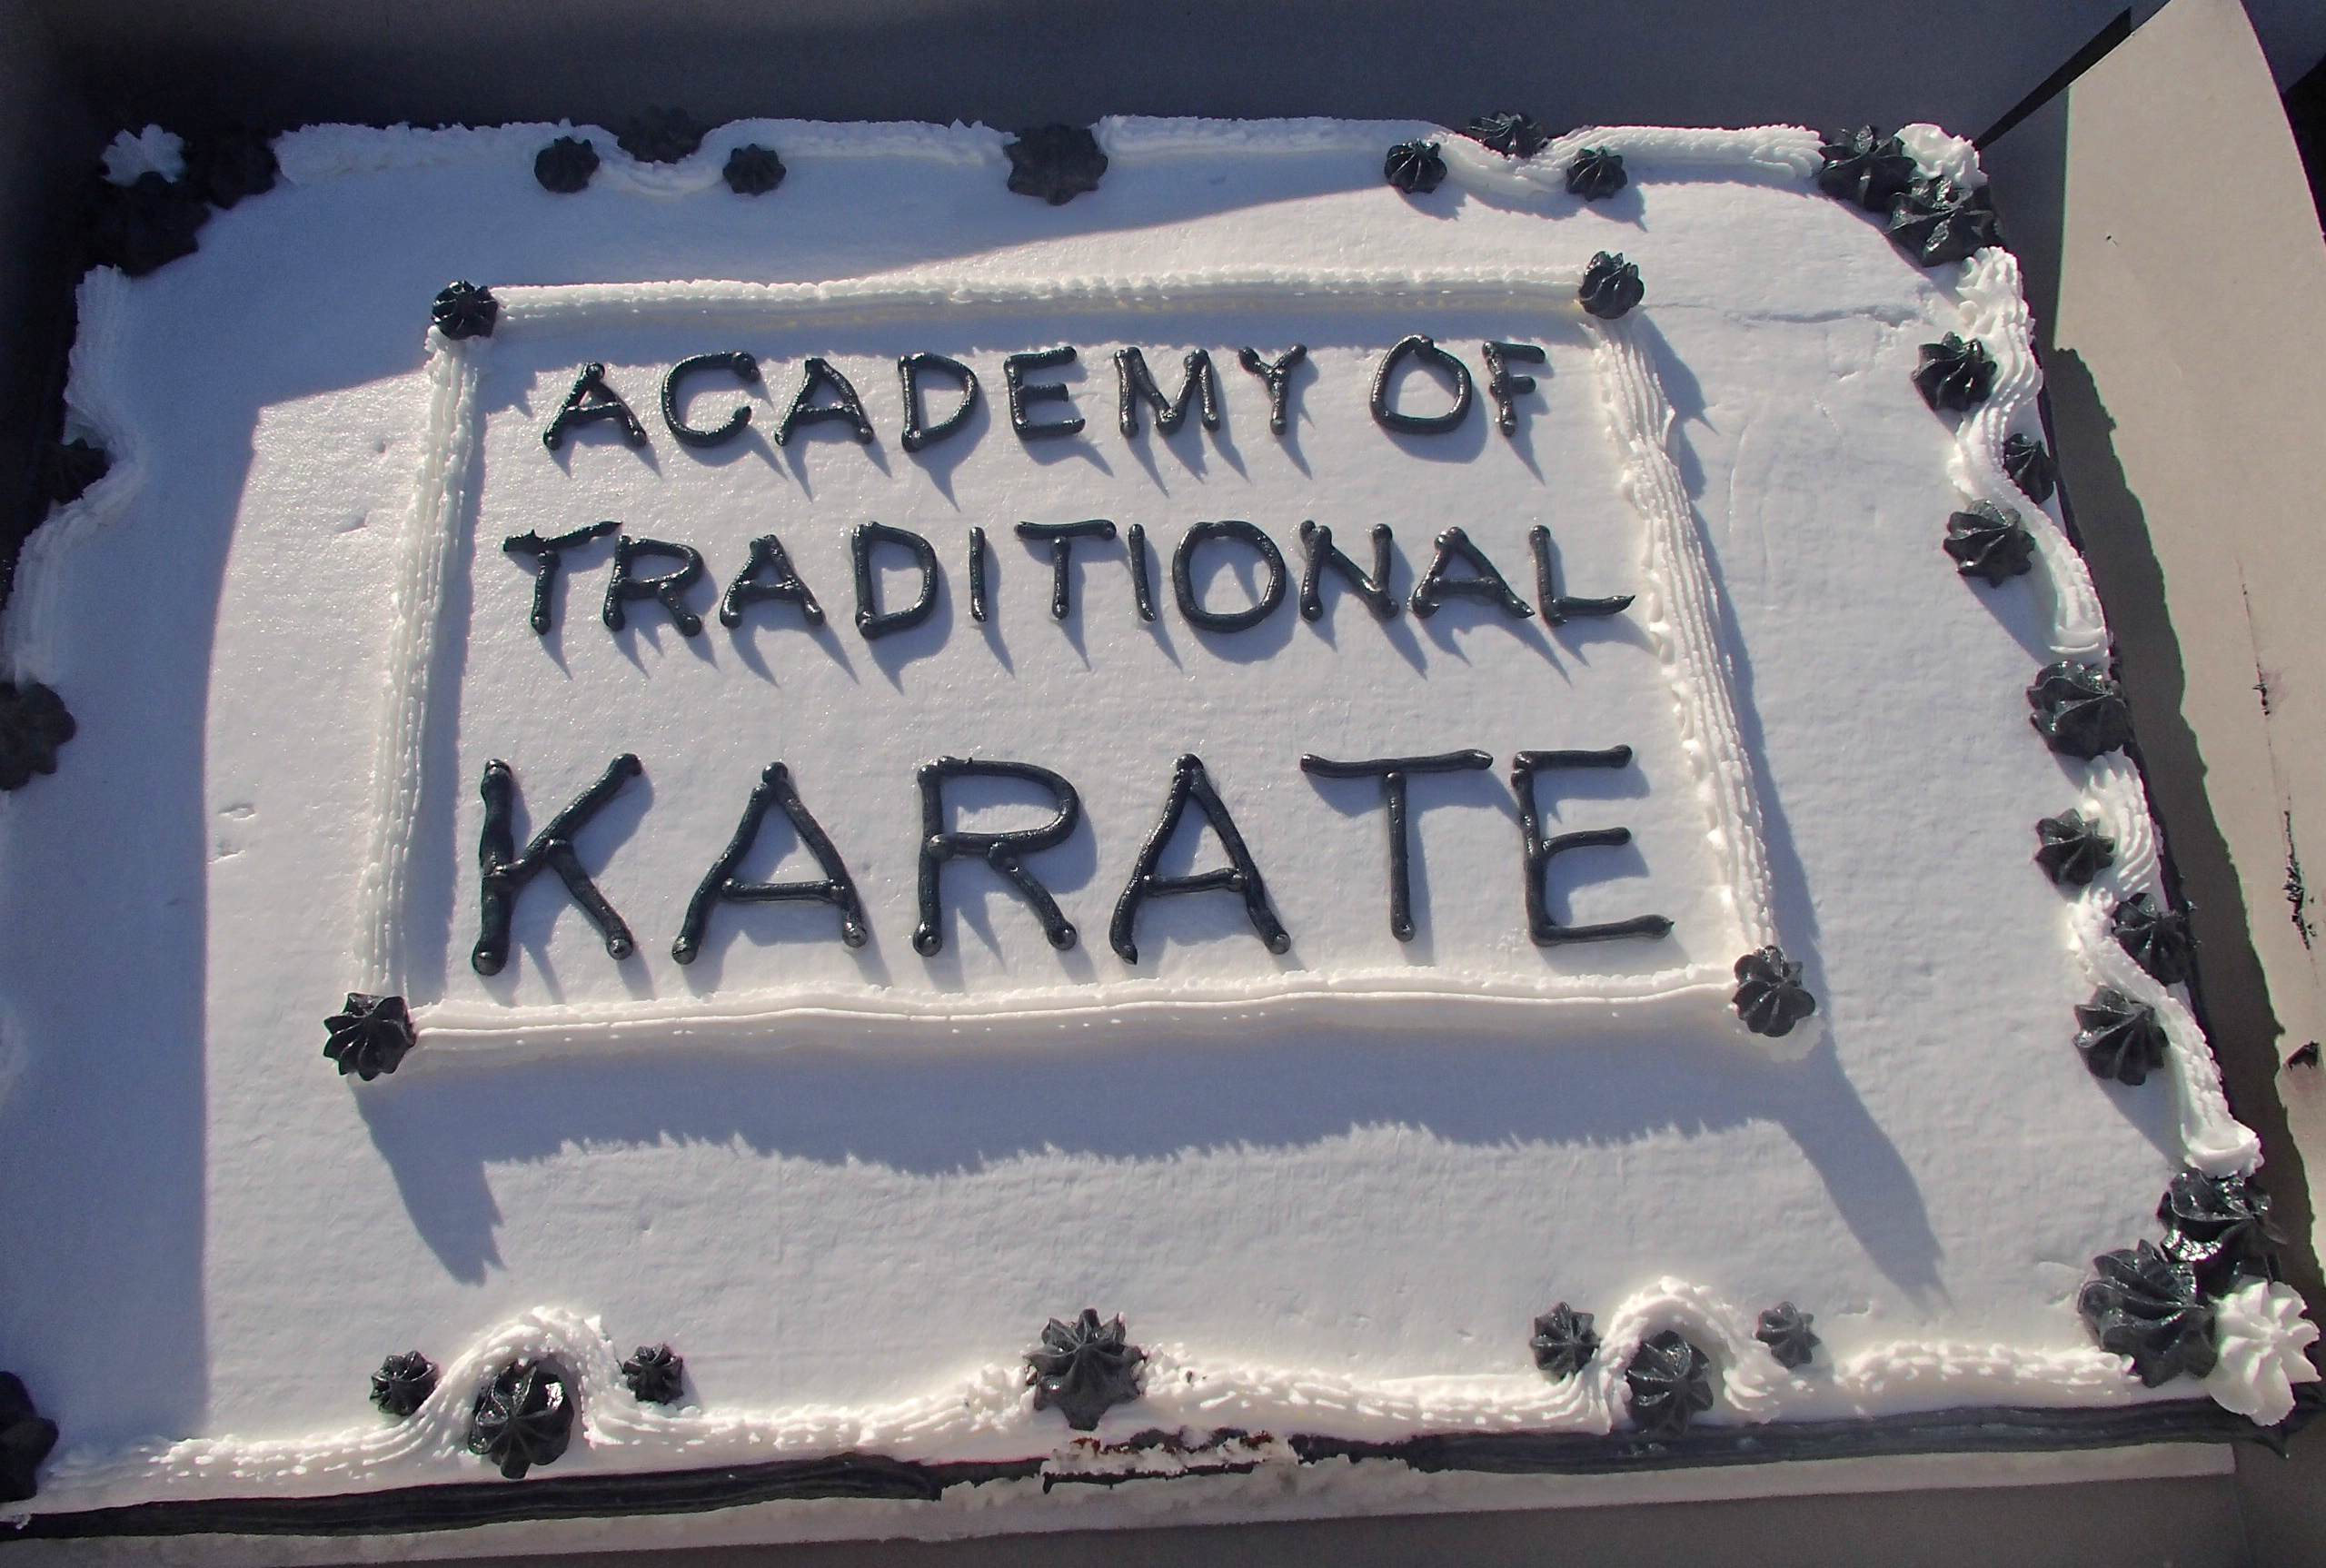 Academy of Traditional Karate Cake